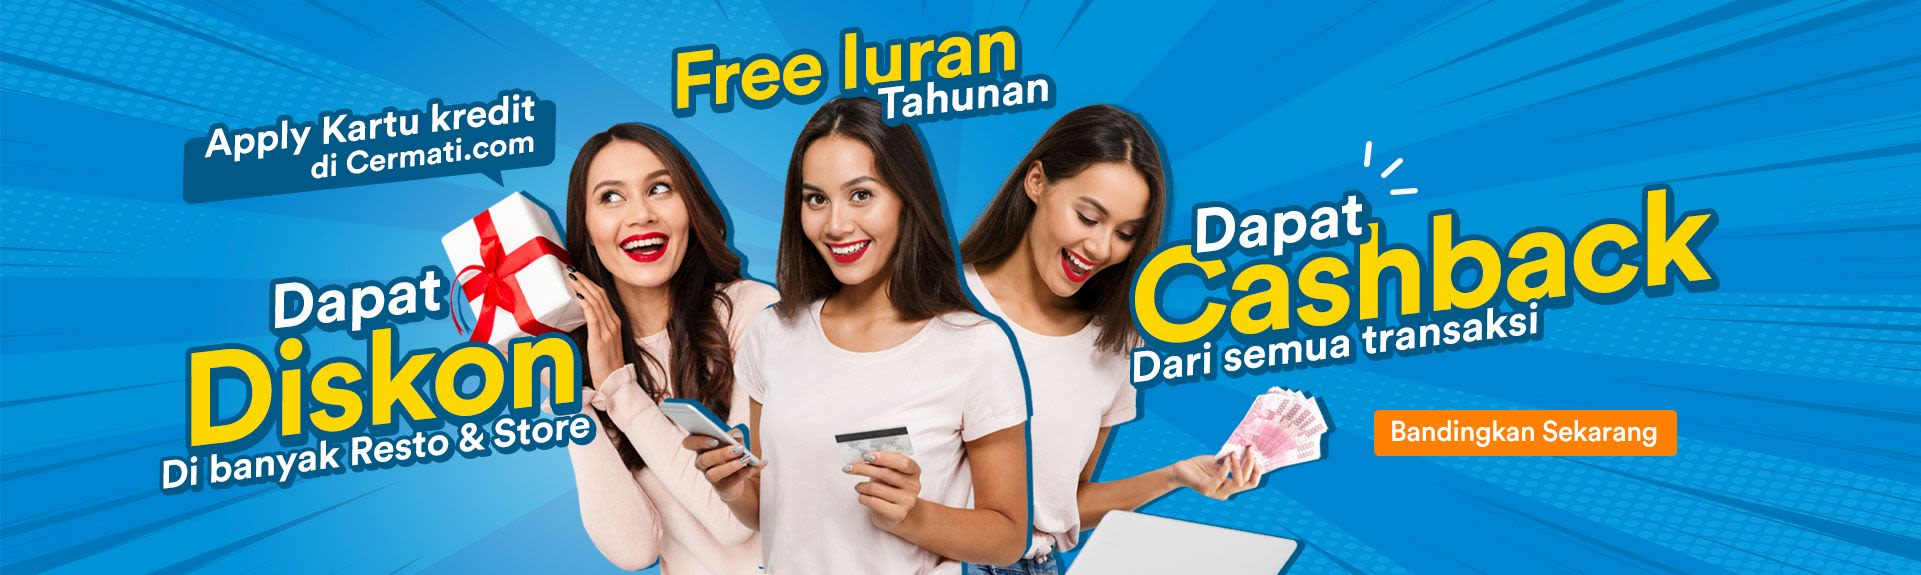 Apply Kartu Kredit Online di Cermati